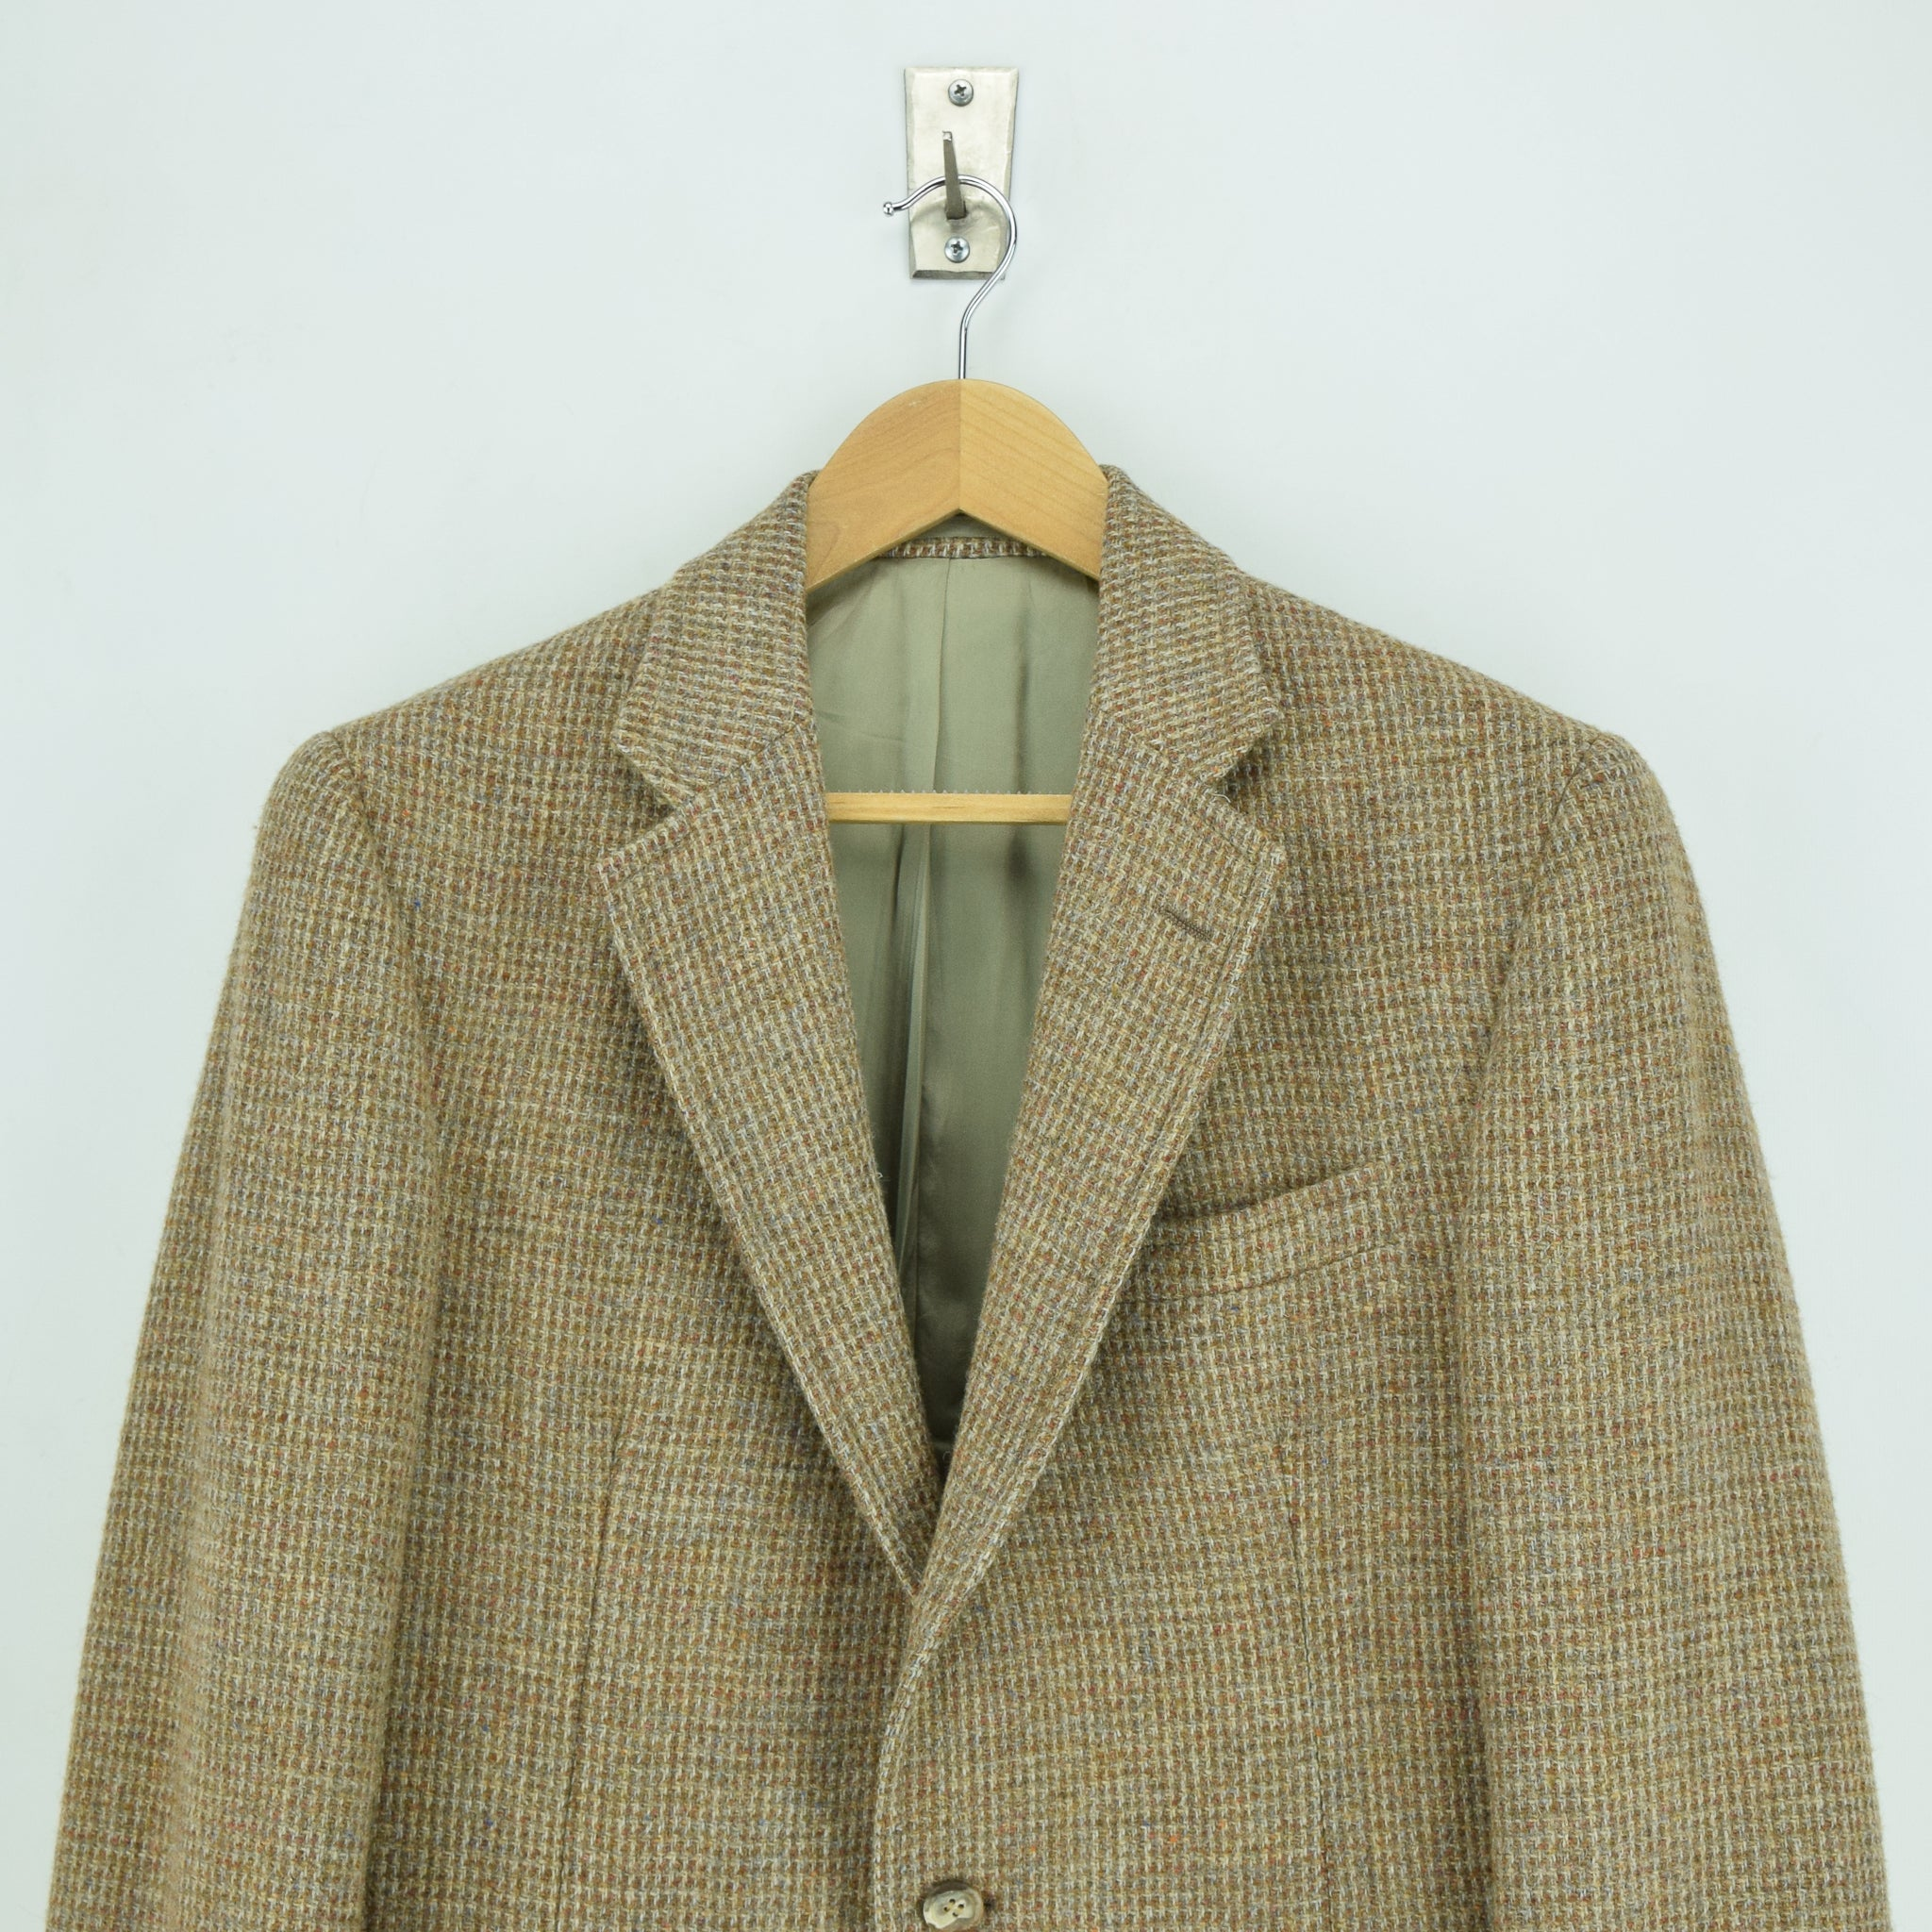 Vintage Harris Tweed Tailored in USA Brown Sports Jacket Country Blazer 38 chest